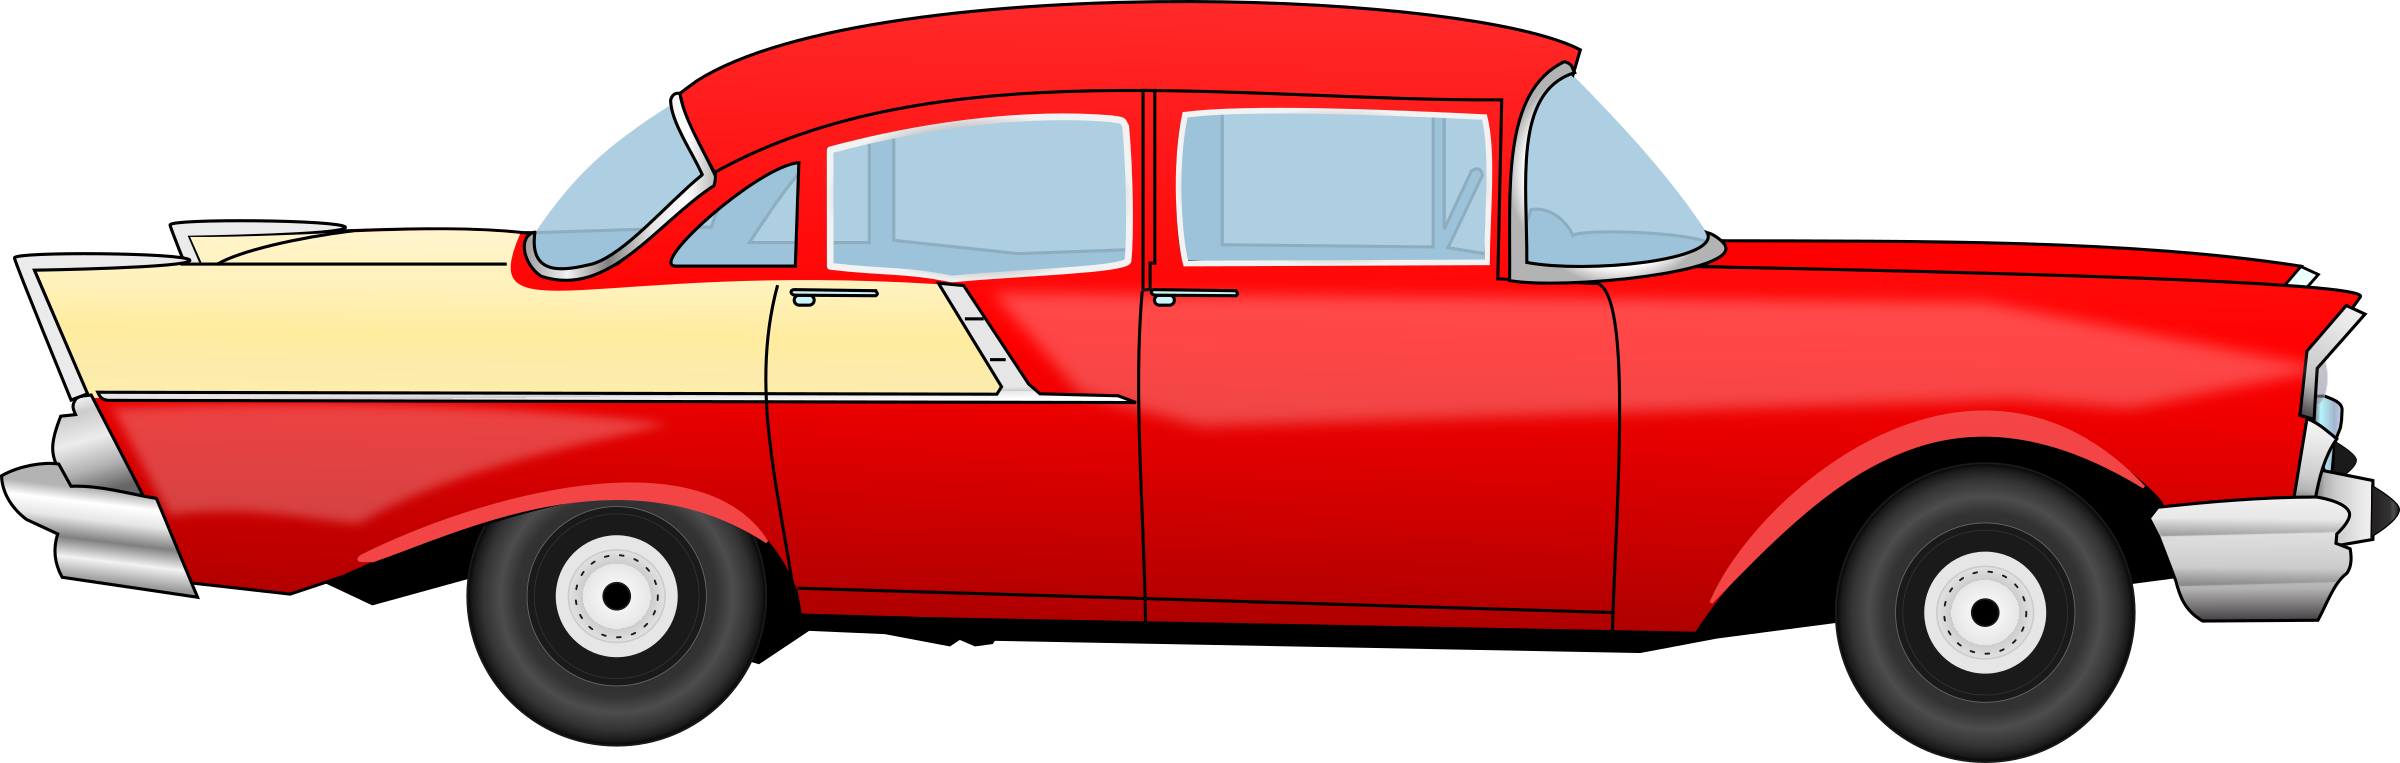 Old car clipart svg Clipart - Chevrolet 55 old classic car svg